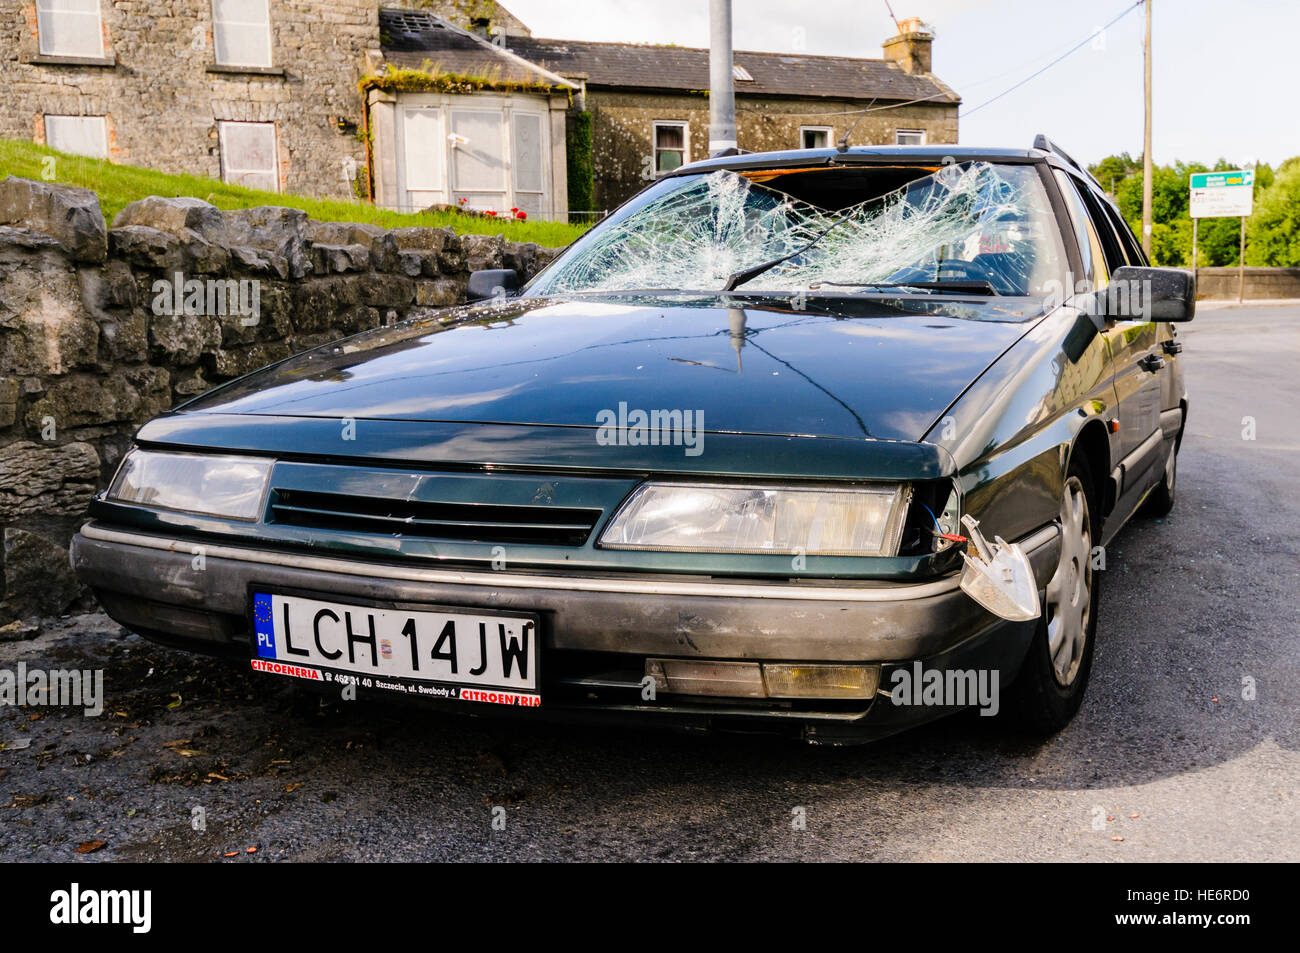 A car belonging to a Polish family is smashed up in a racist attack. - Stock Image